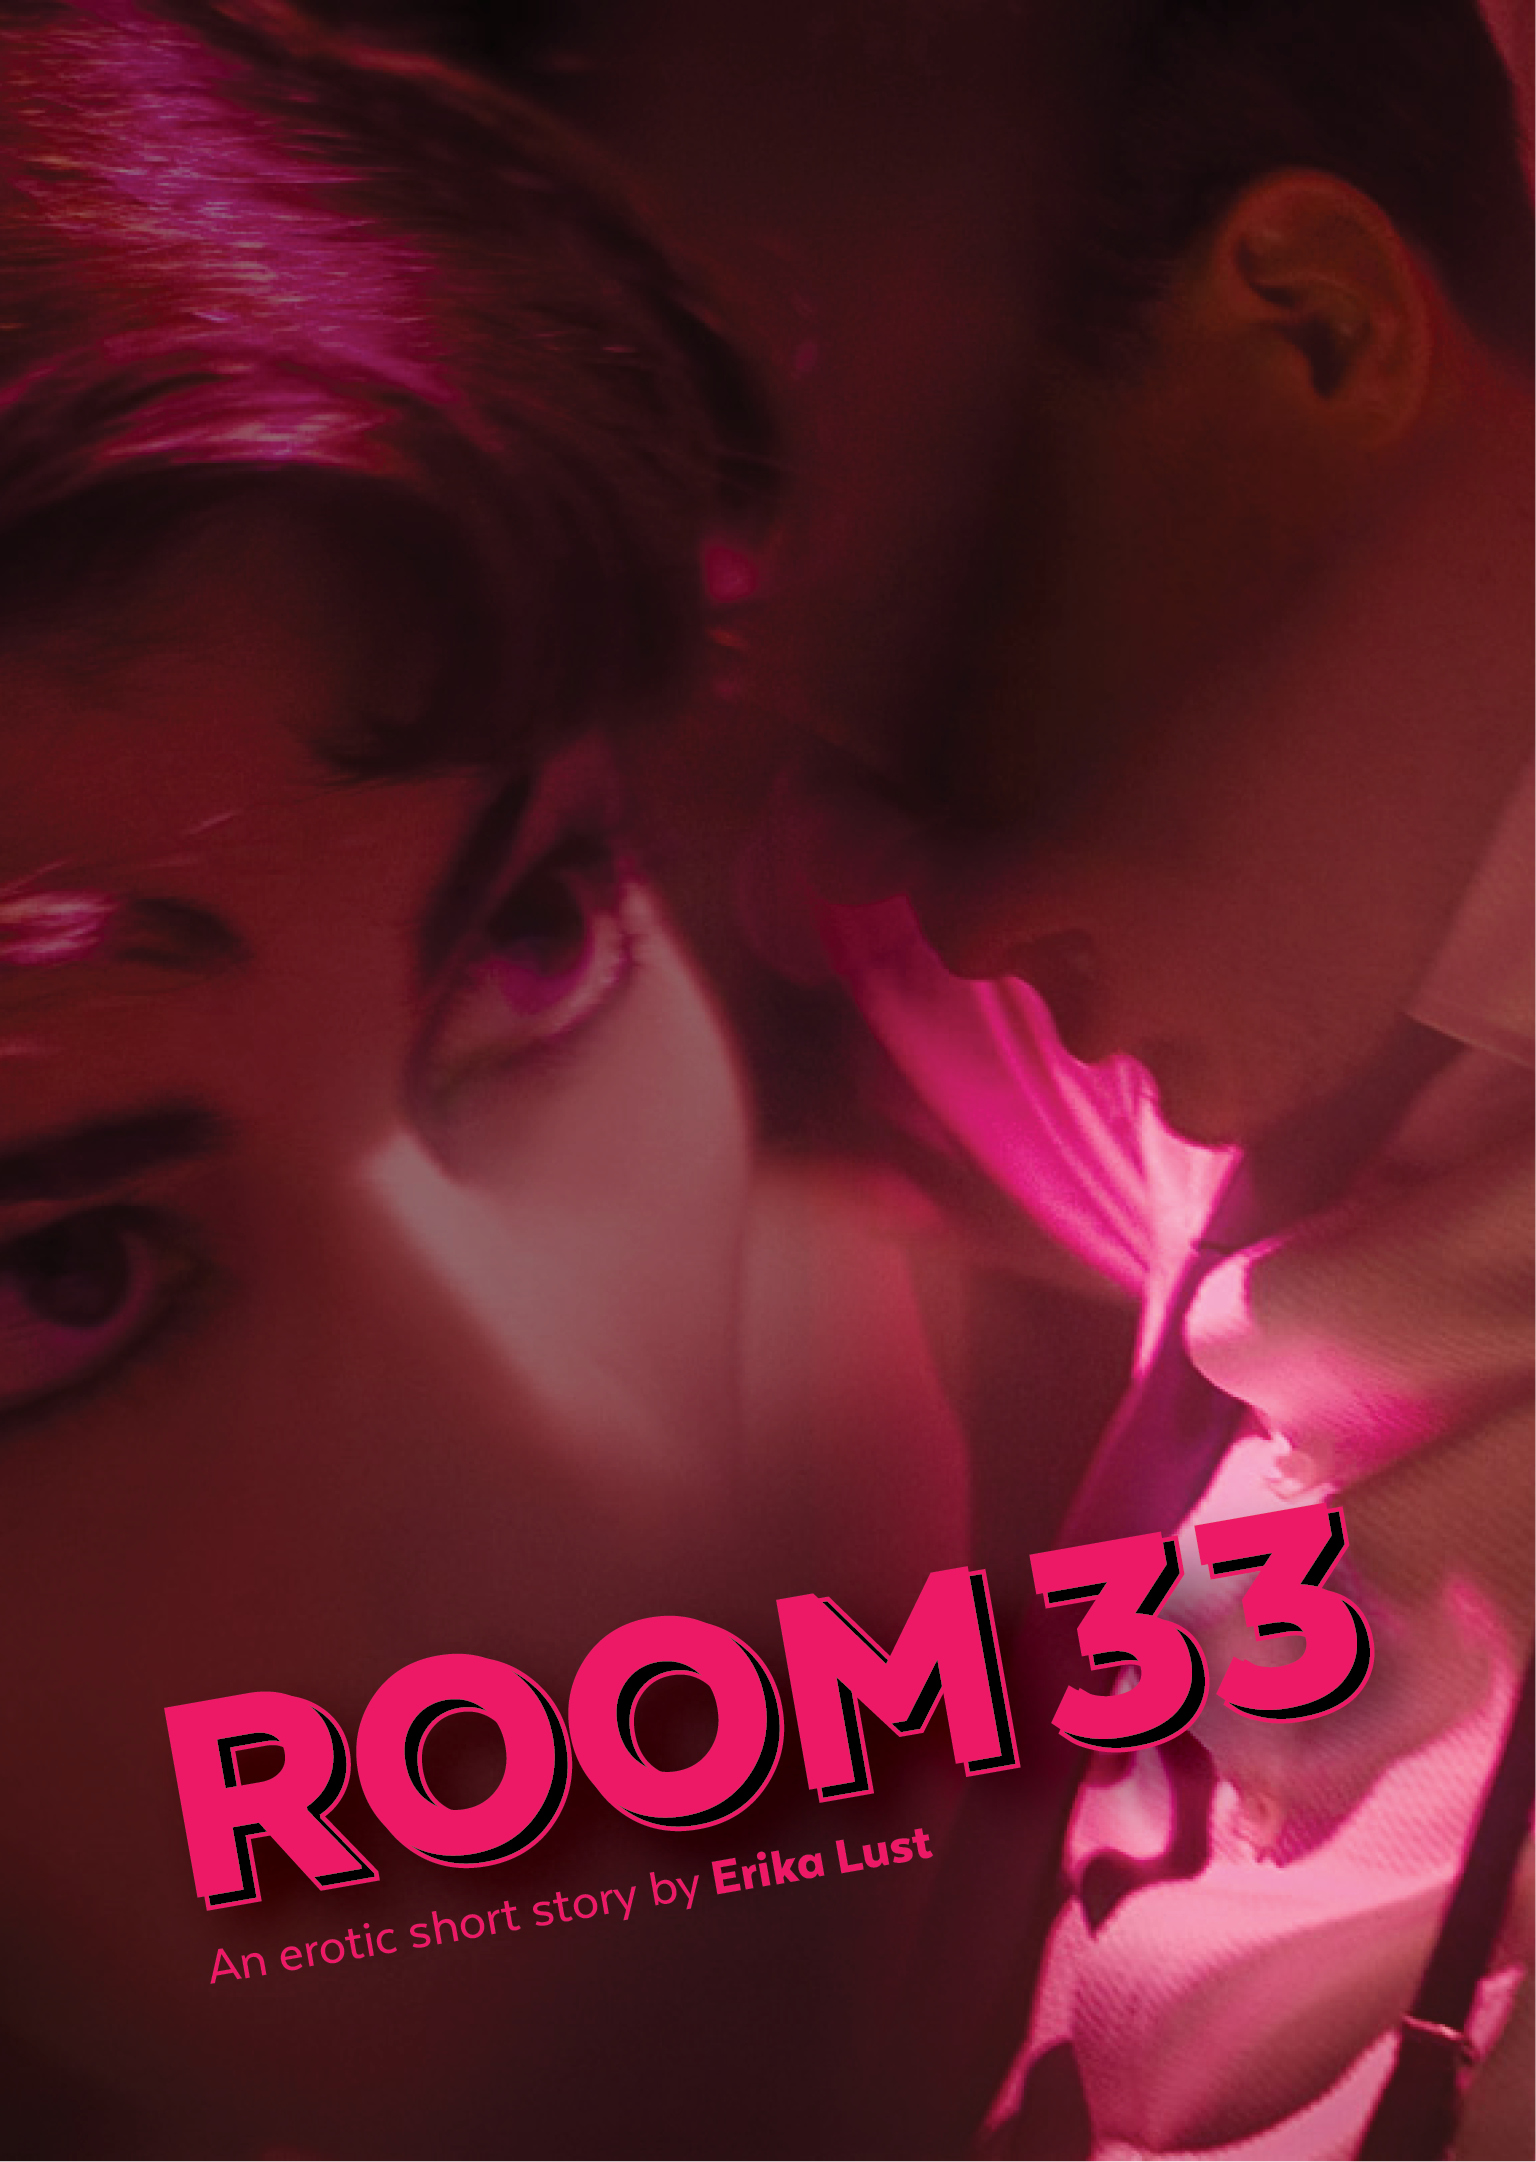 Xconfessions By Erika Lust, Room 33